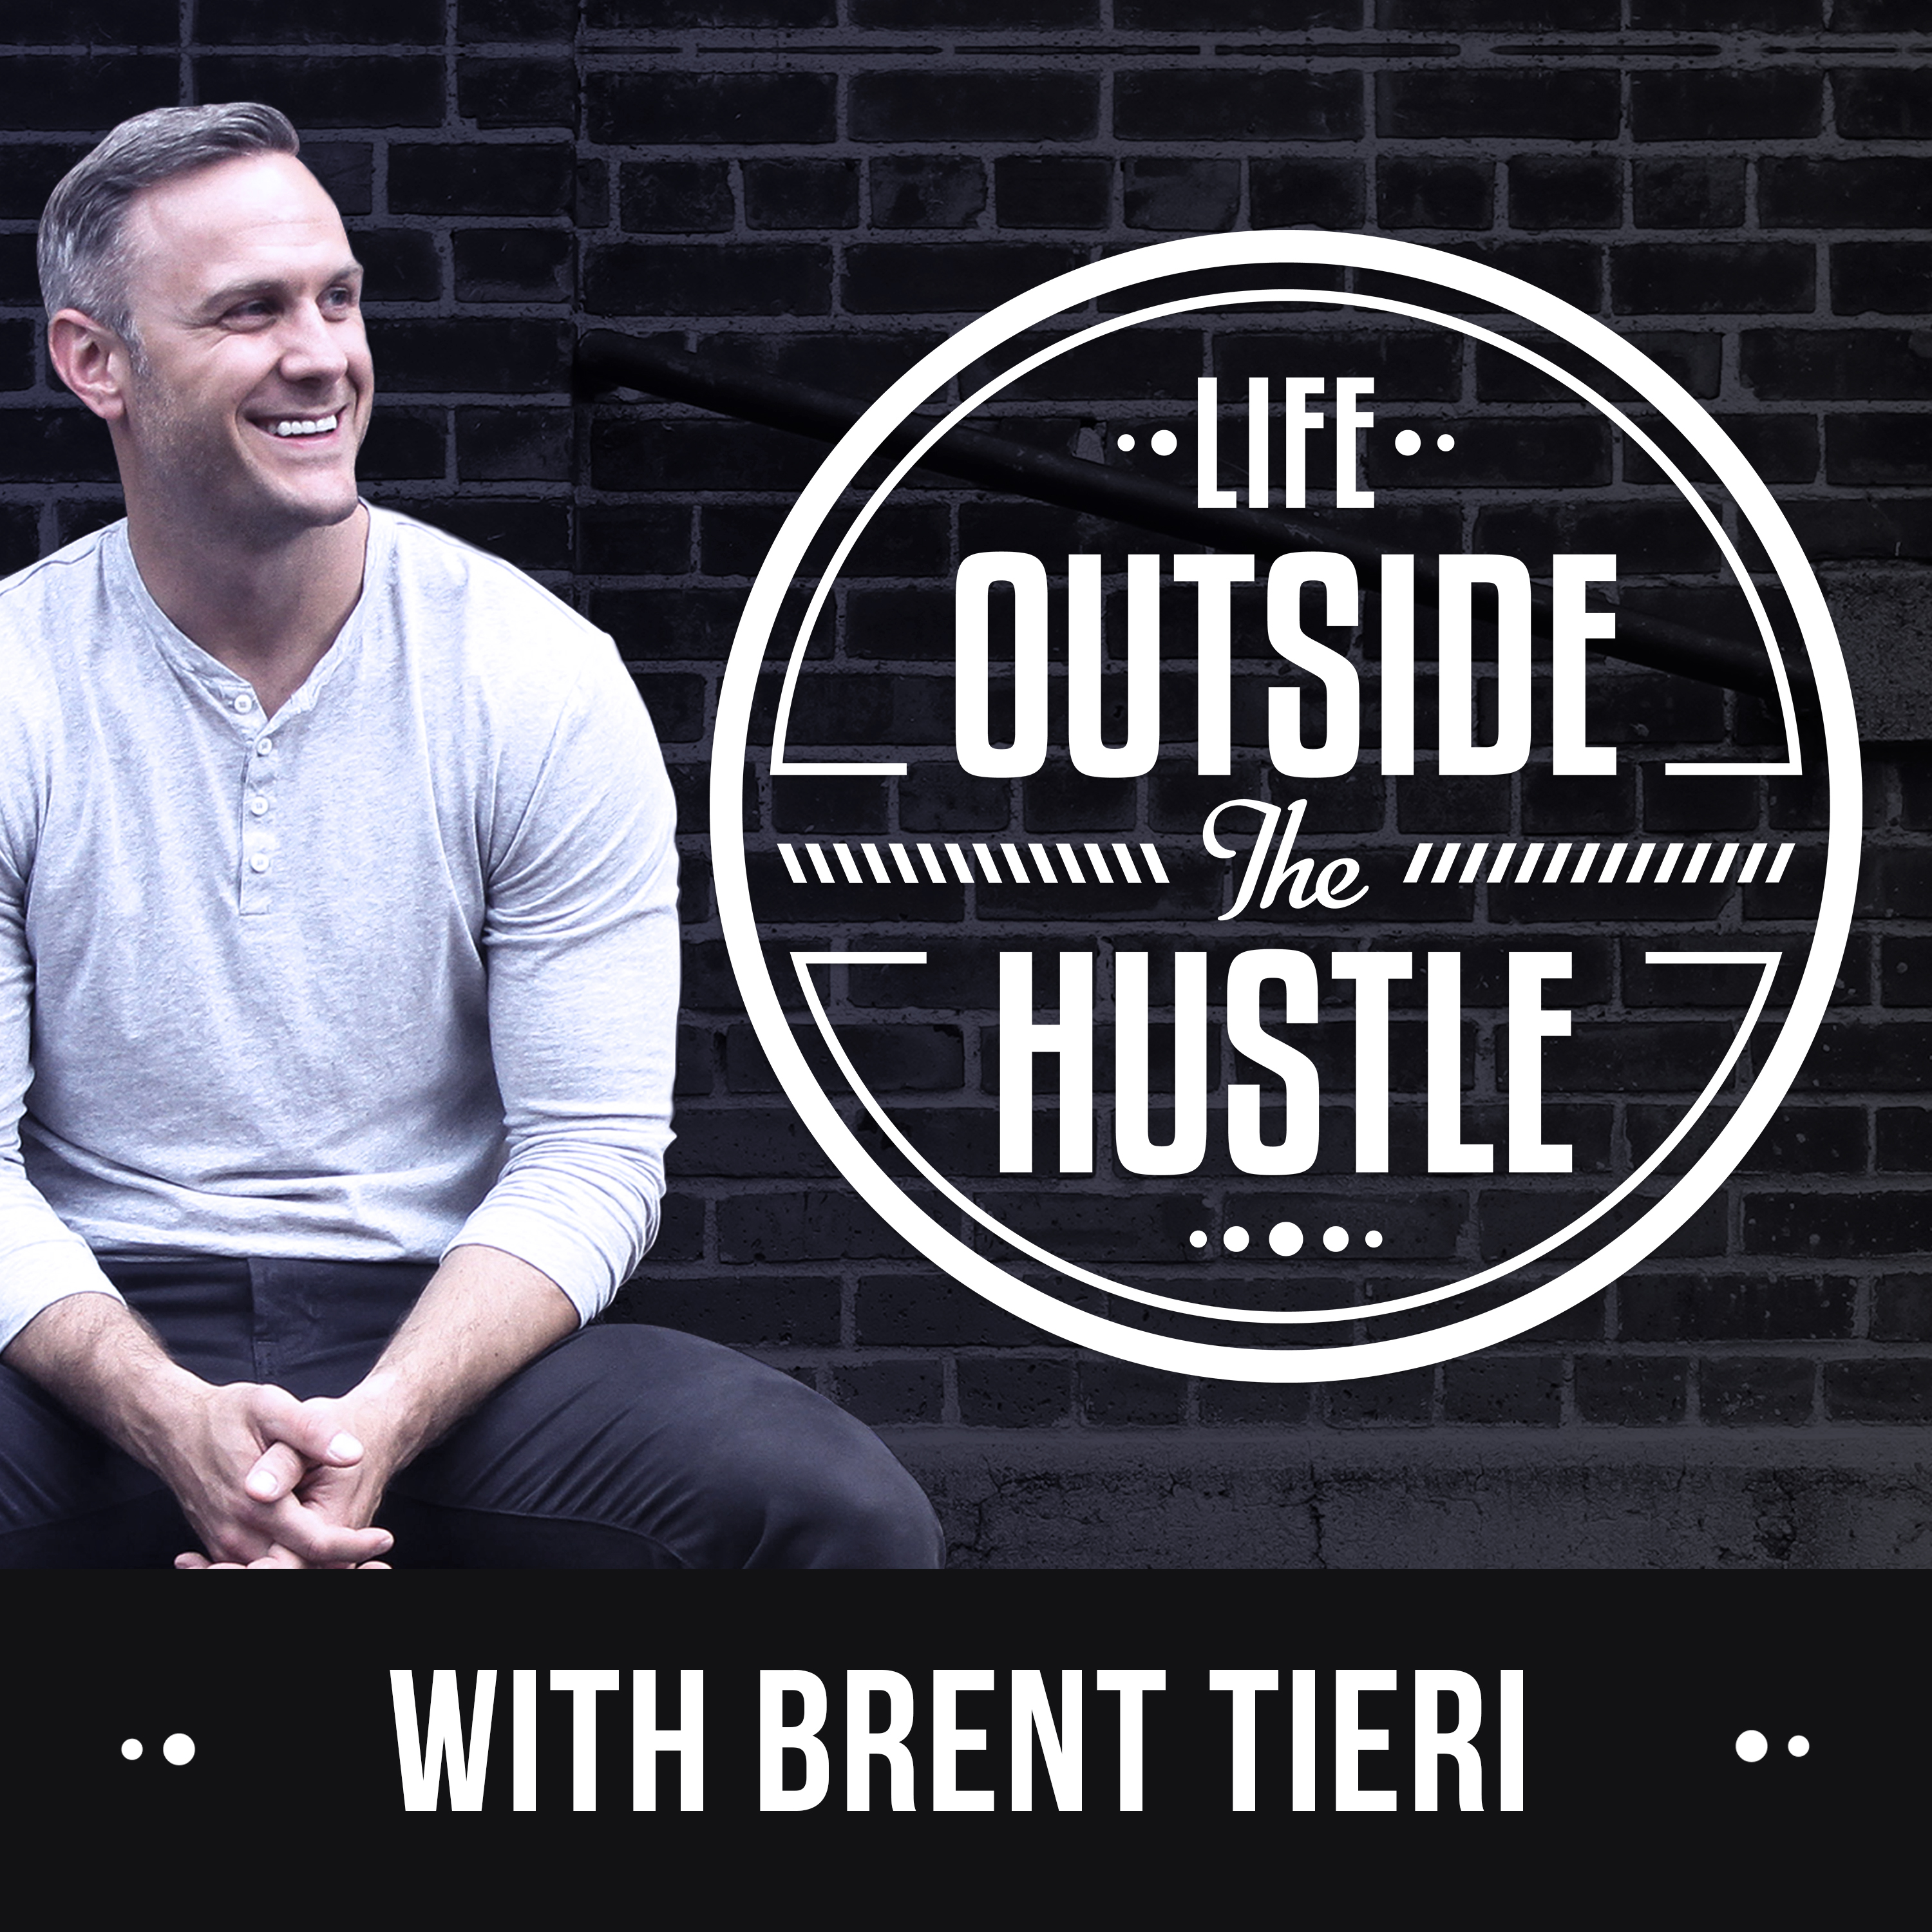 Life Outside the Hustle with Brent Tieri logo